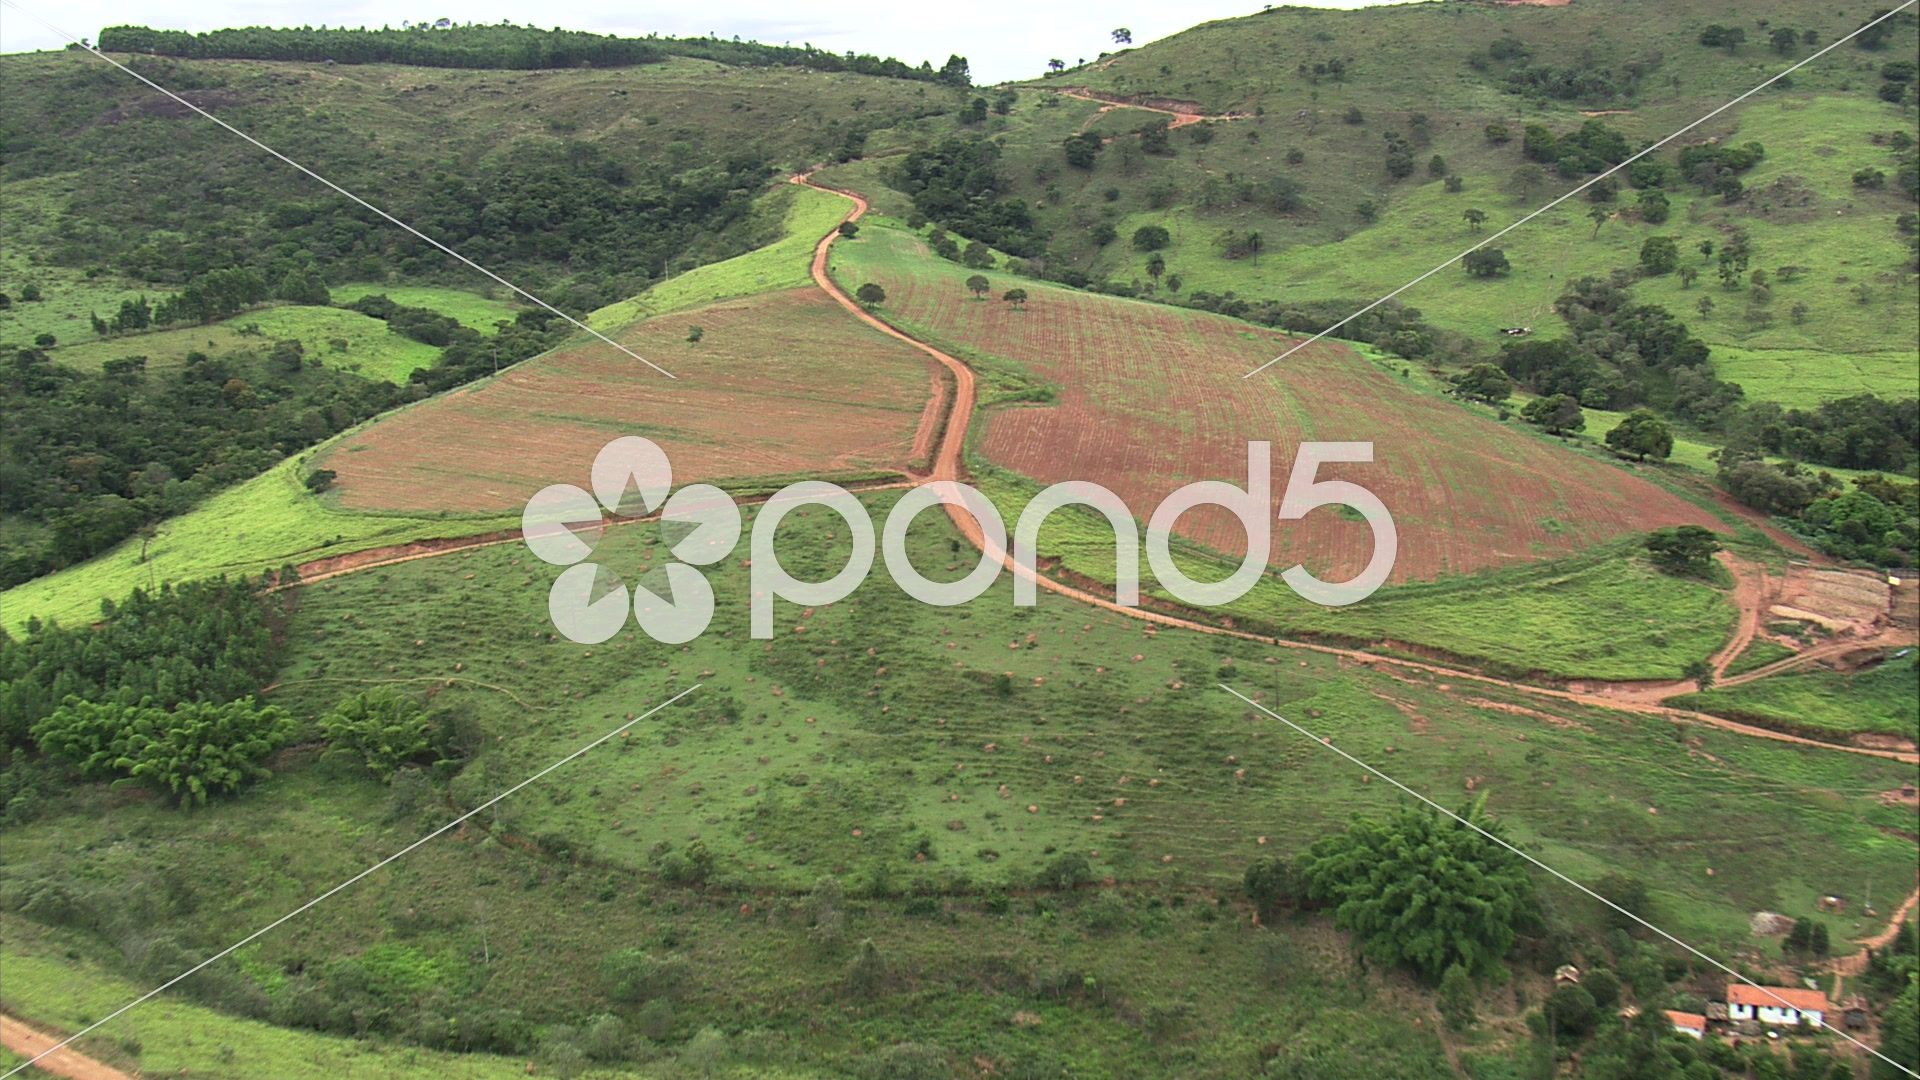 Aerial Brazil dirt road south of Belo Horizonte Belo Horizonte Stock Footage dirtroadBrazilAerial